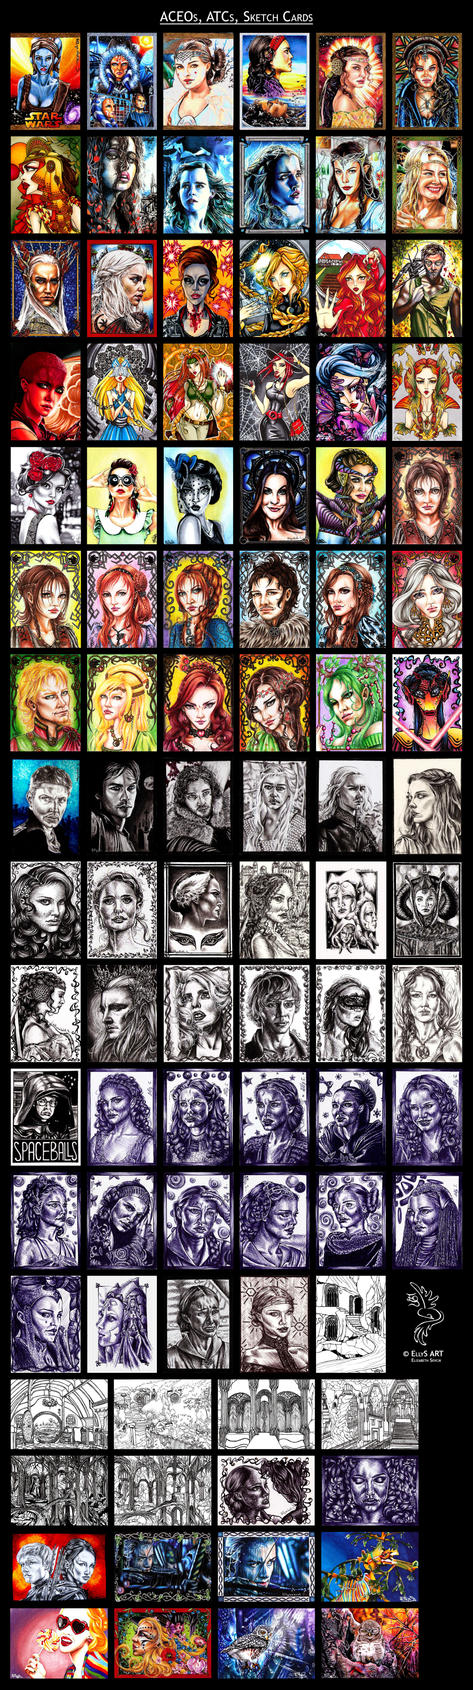 ACEOs, ATCs, Sketch Cards - full collection by vvveverka